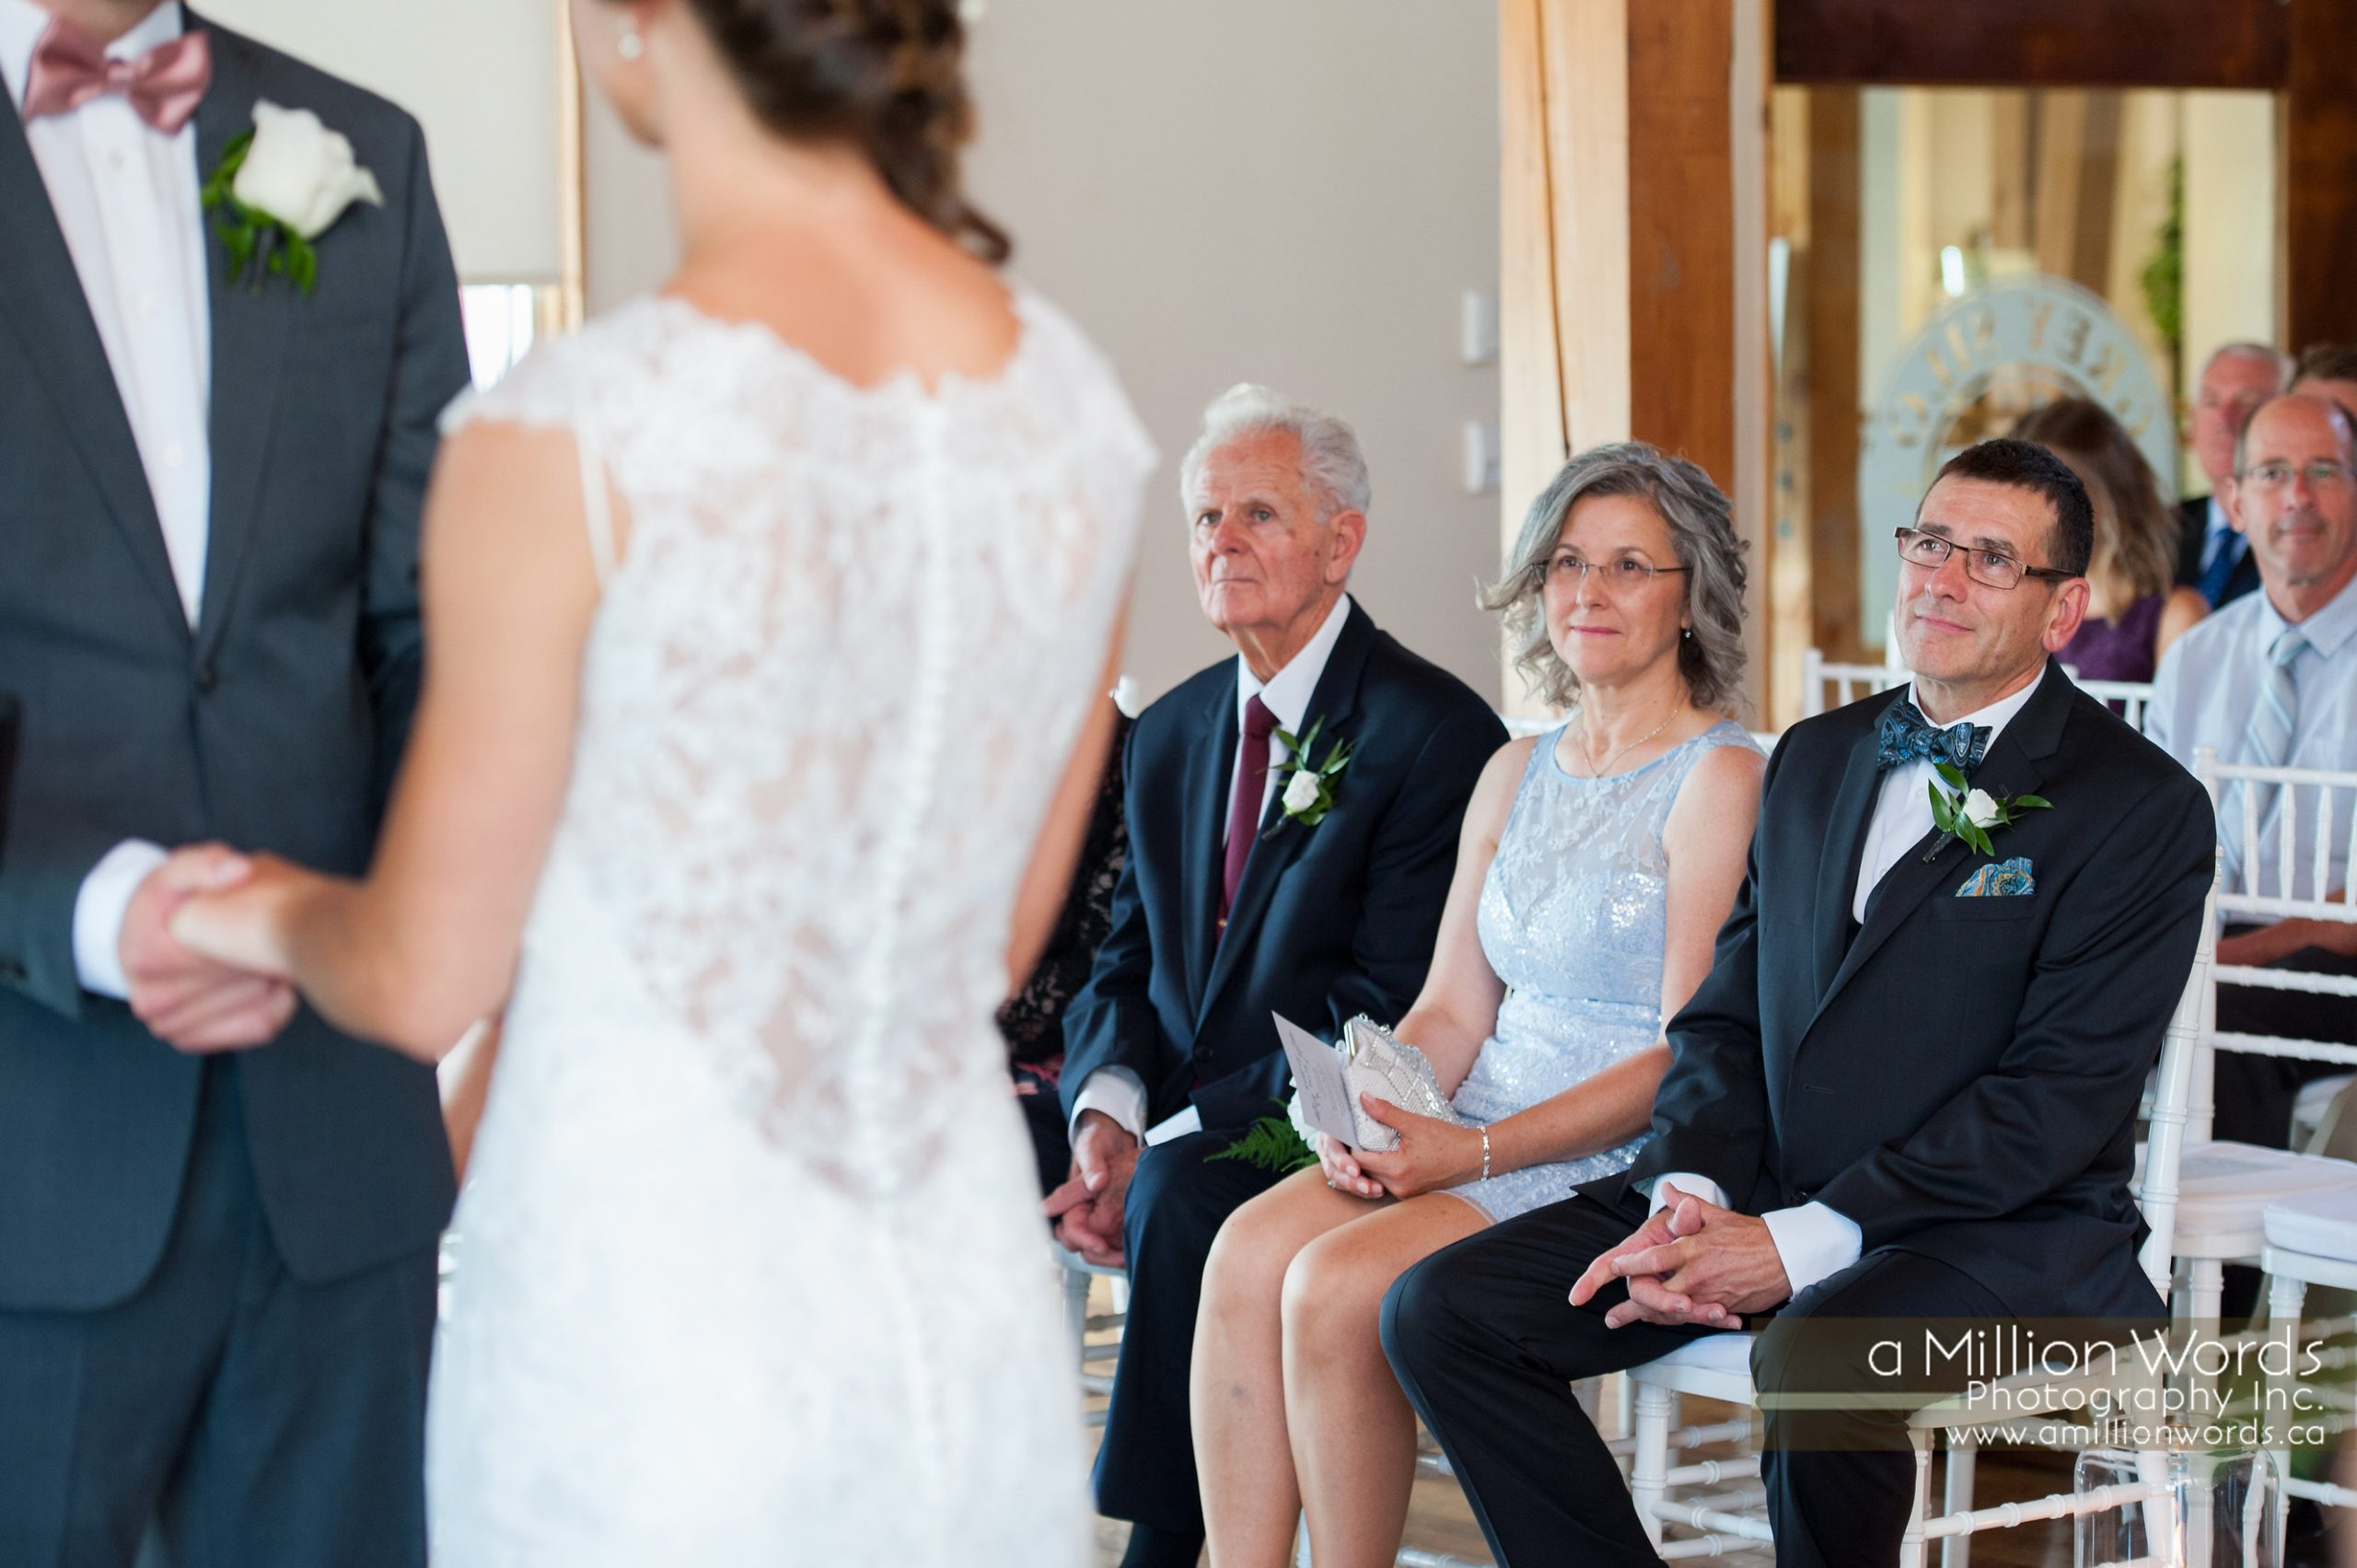 kw_wedding_photography31